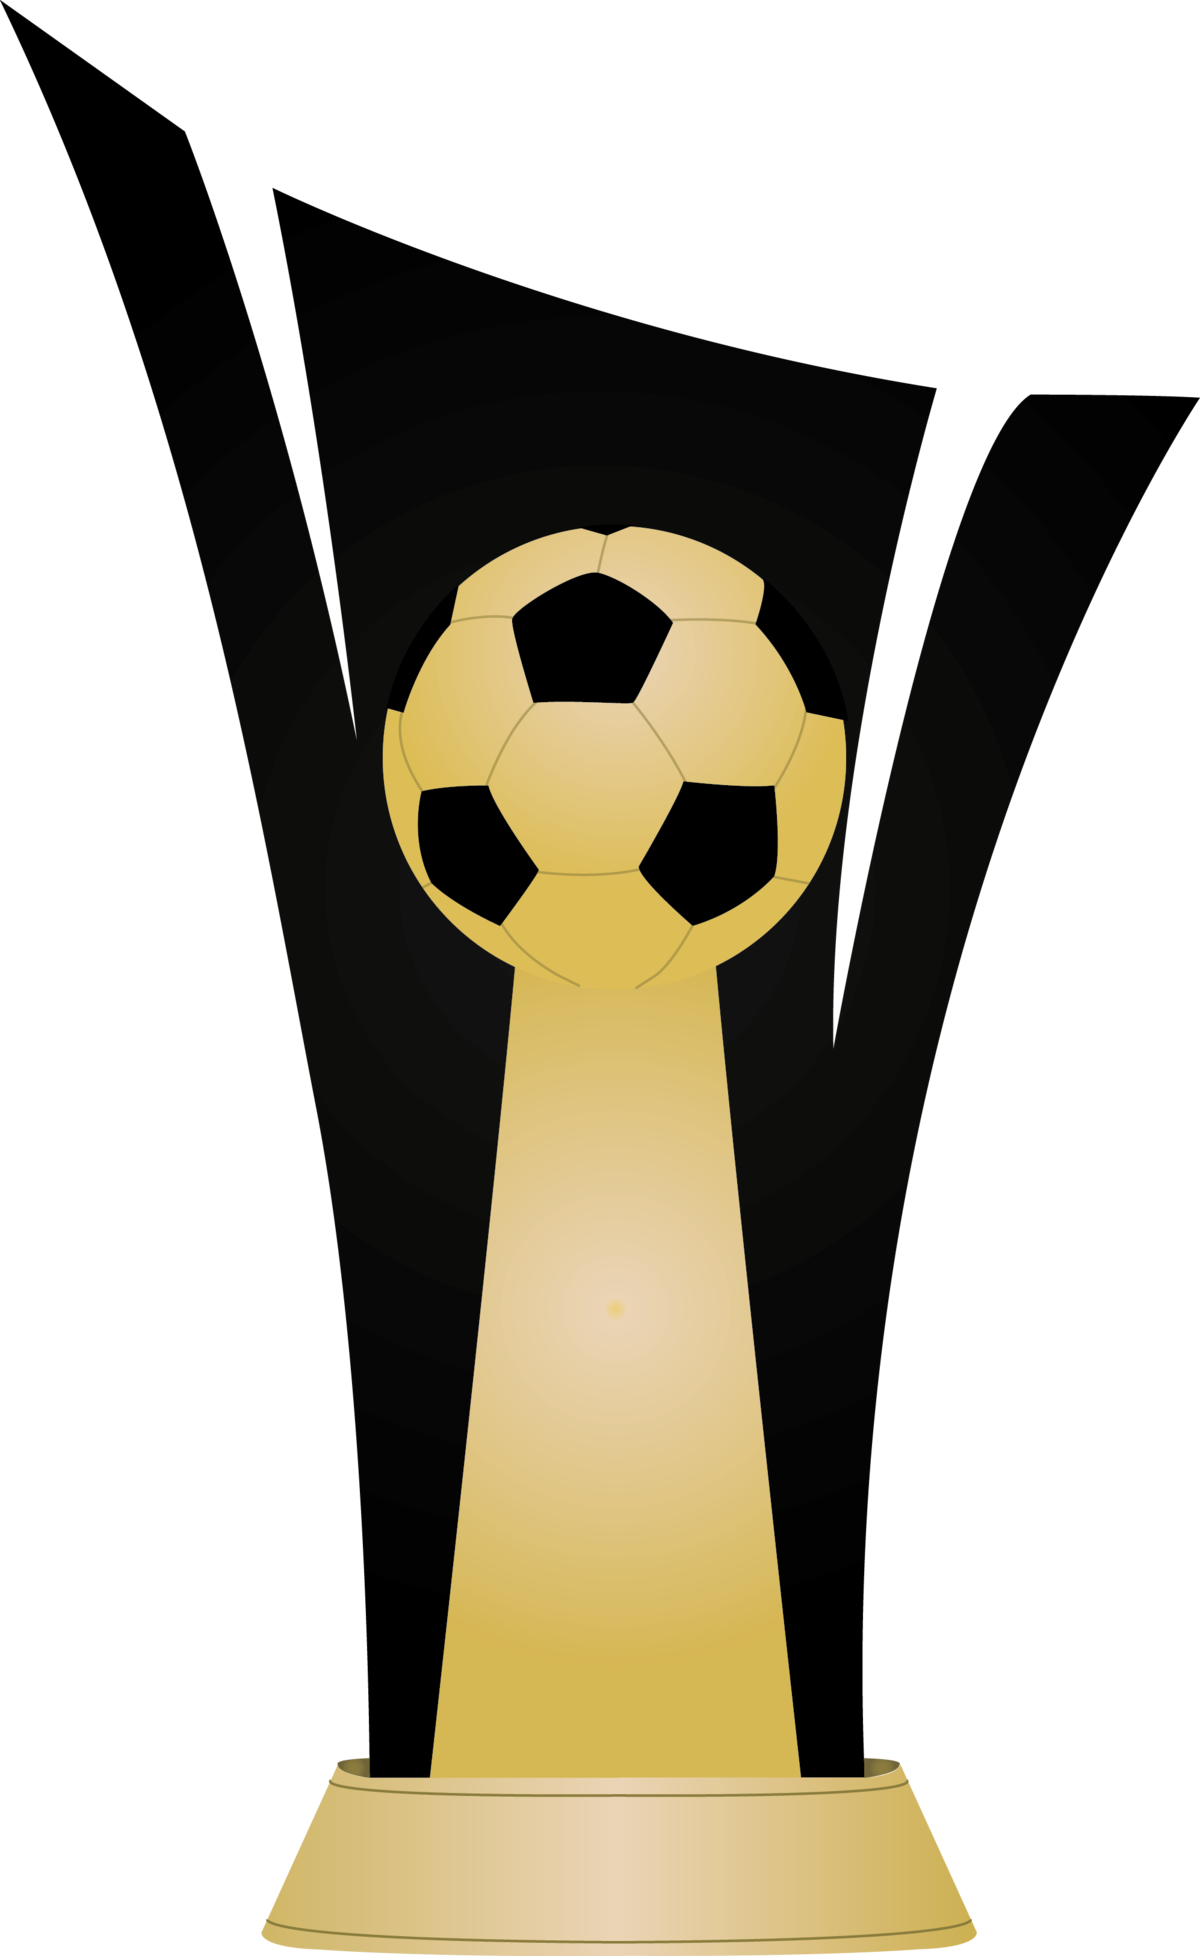 File:CONCACAF Champions League Trophy Icon.png - Wikimedia ...